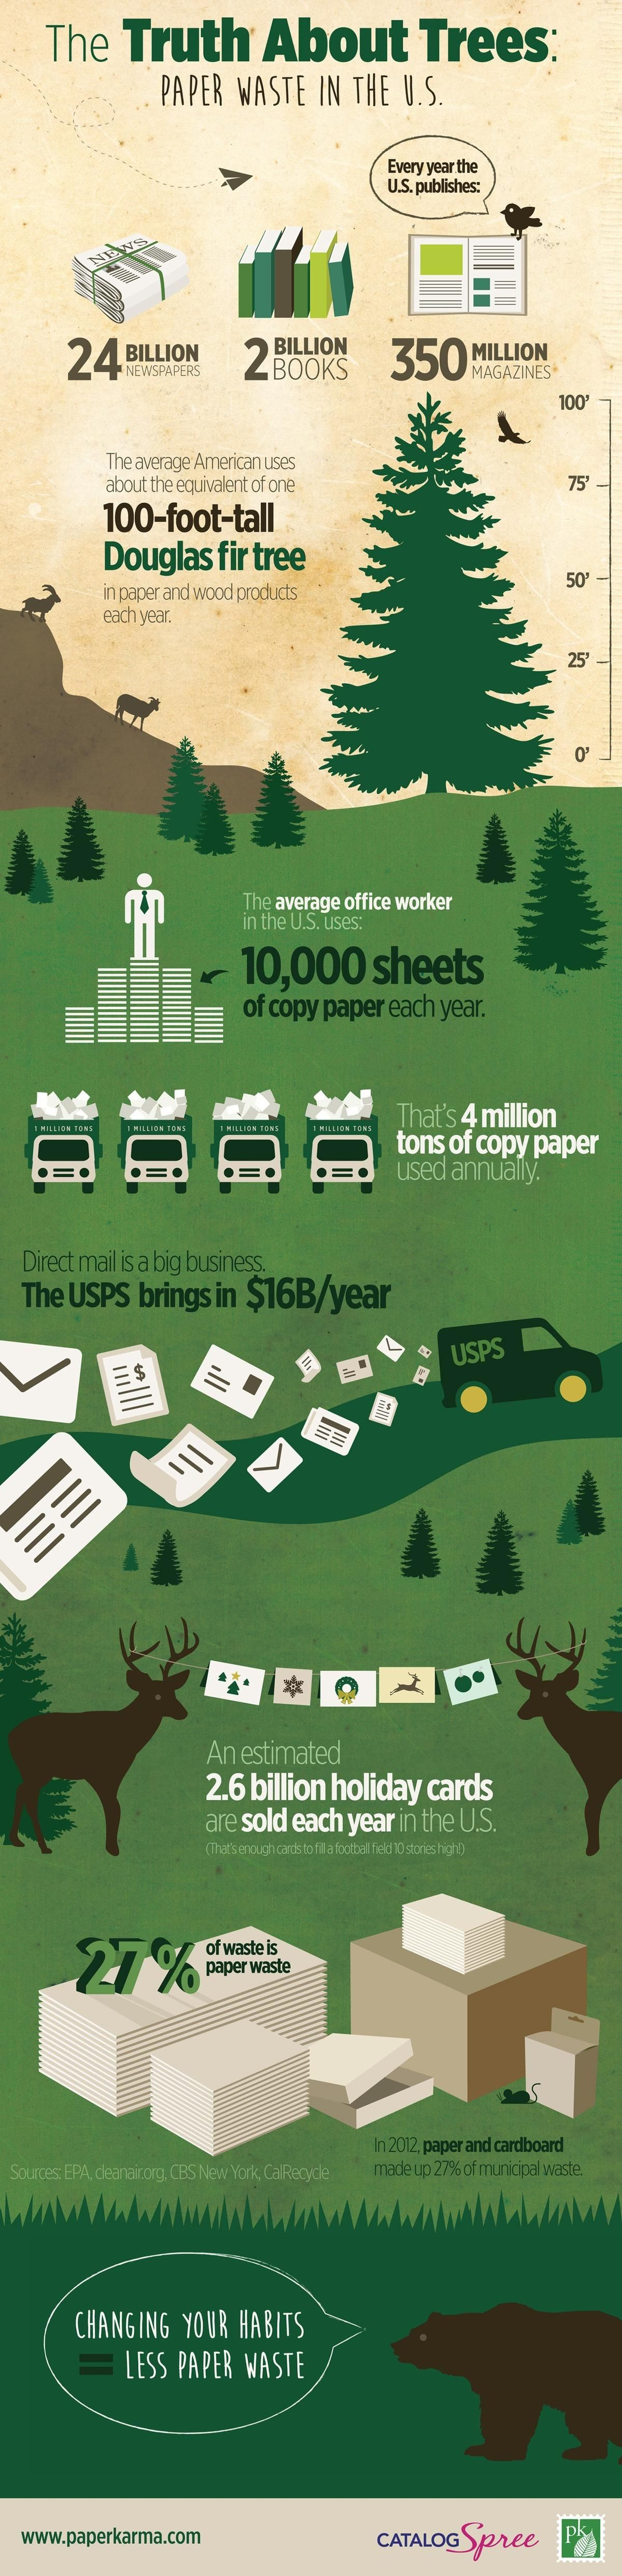 Average U.S. Office Worker Uses 10,000 Sheets of Paper Per Year ...